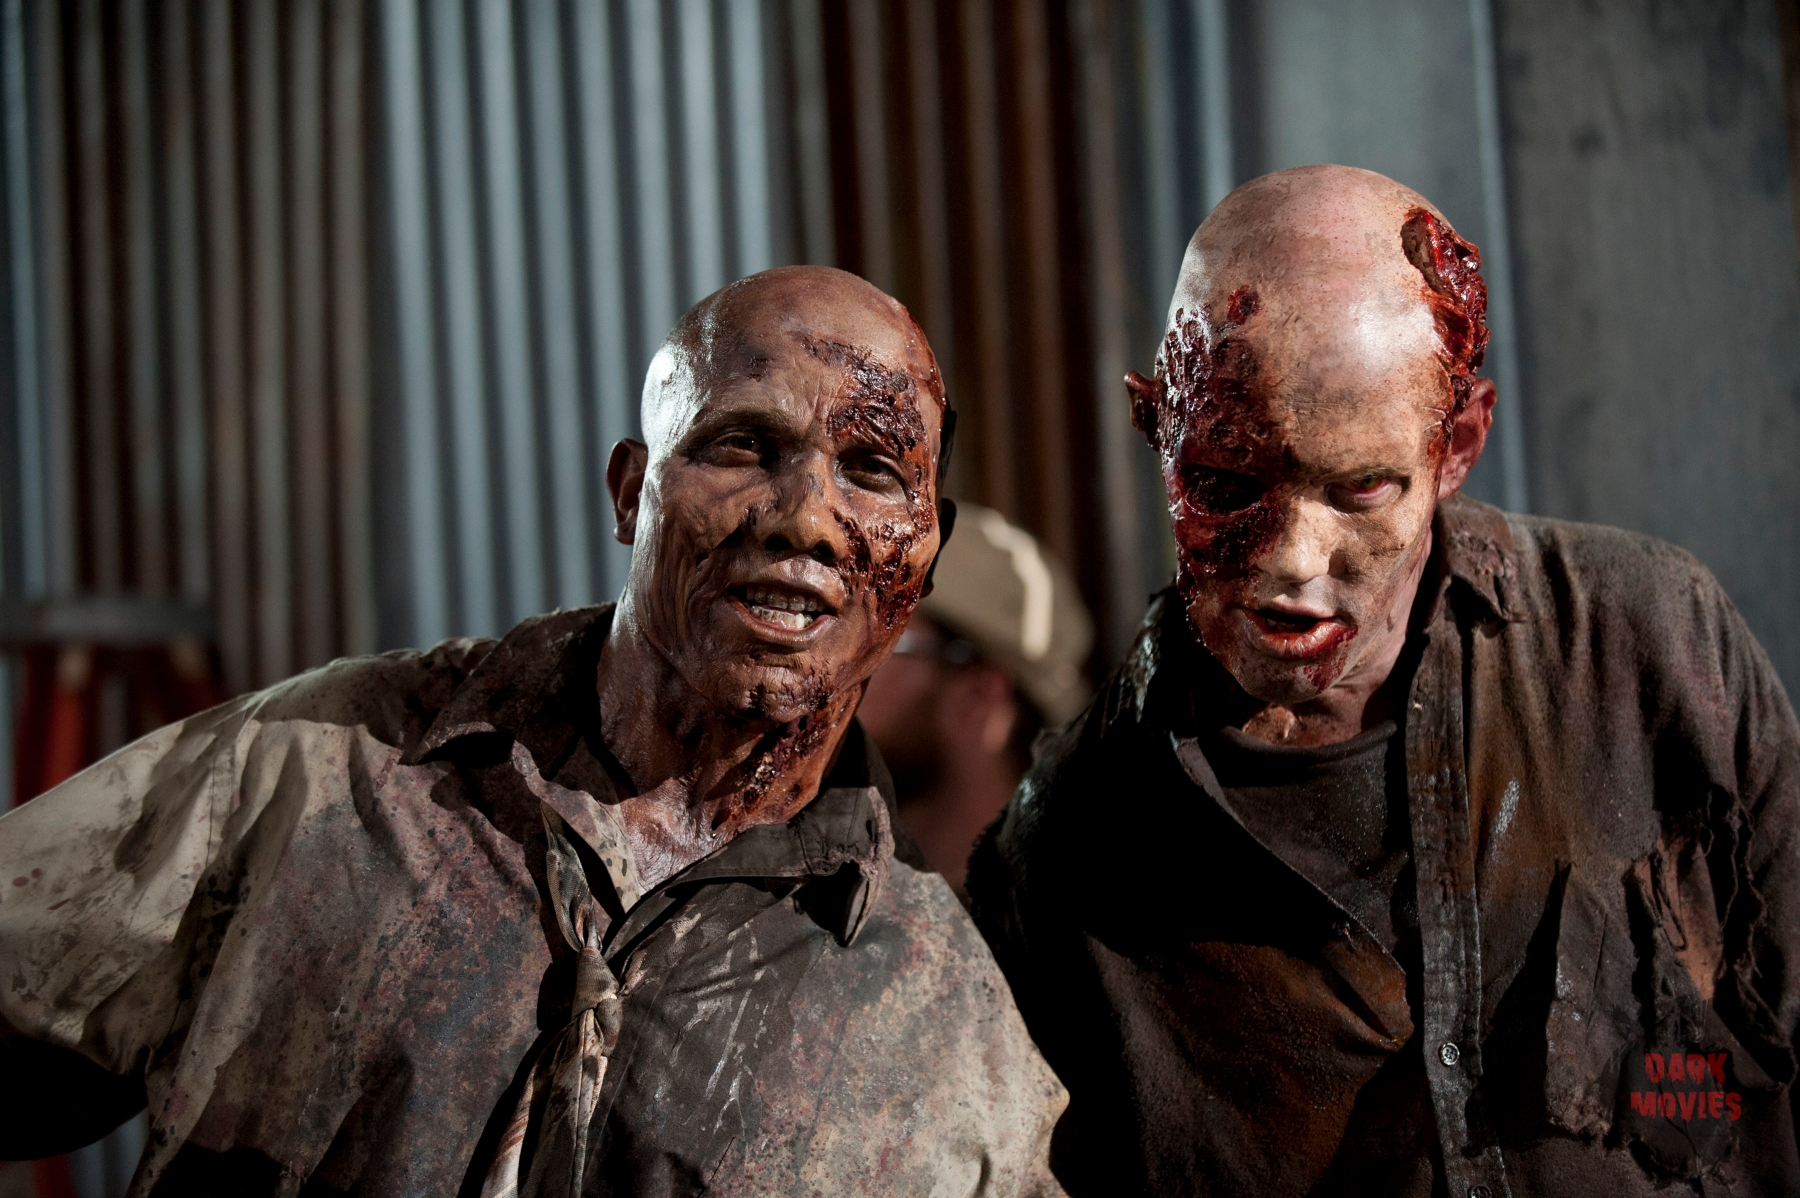 Former Steelers receiver Hines Ward spends a day on the set of AMC's The Walking Dead as a zombie. - Walker (Hines Ward) - The Walking Dead - Season 3, Episode 9 - Photo Credit: Gene Page/AMC